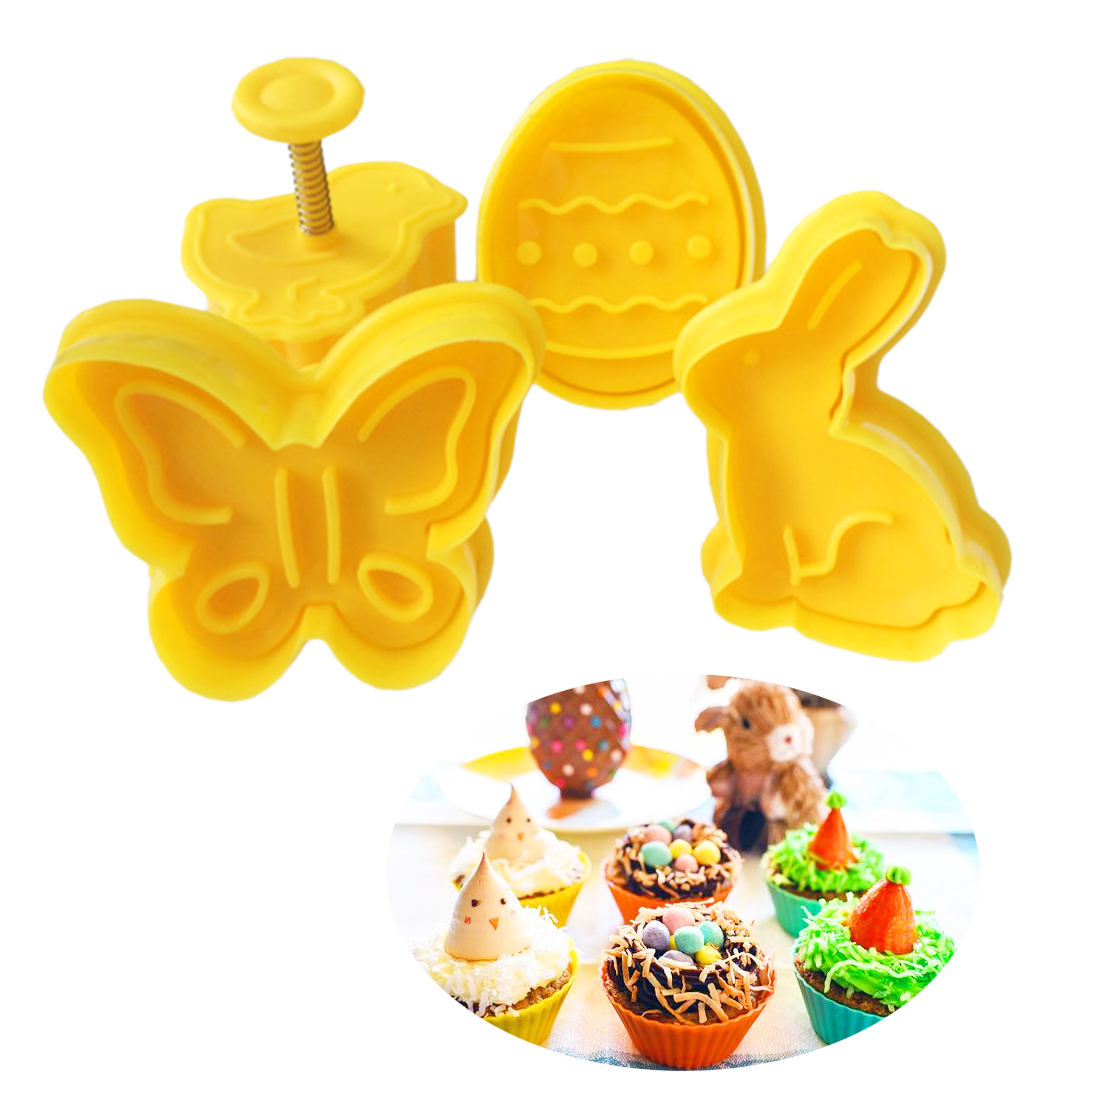 Biscuit Pastry Dinosaur Biscuit Cutter Set of 2 Fondant Cutter